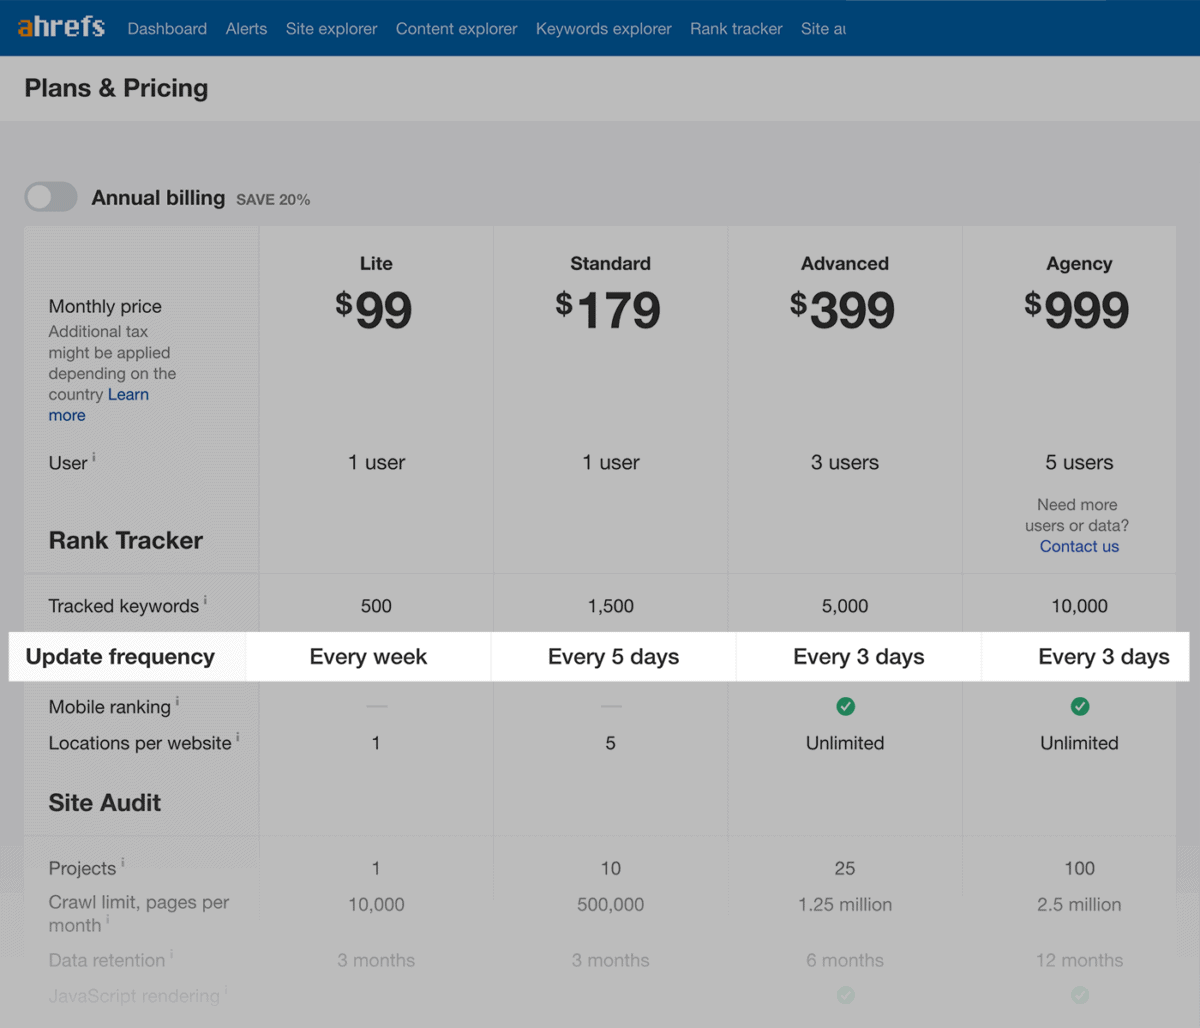 Ahrefs – Pricing – Update frequency